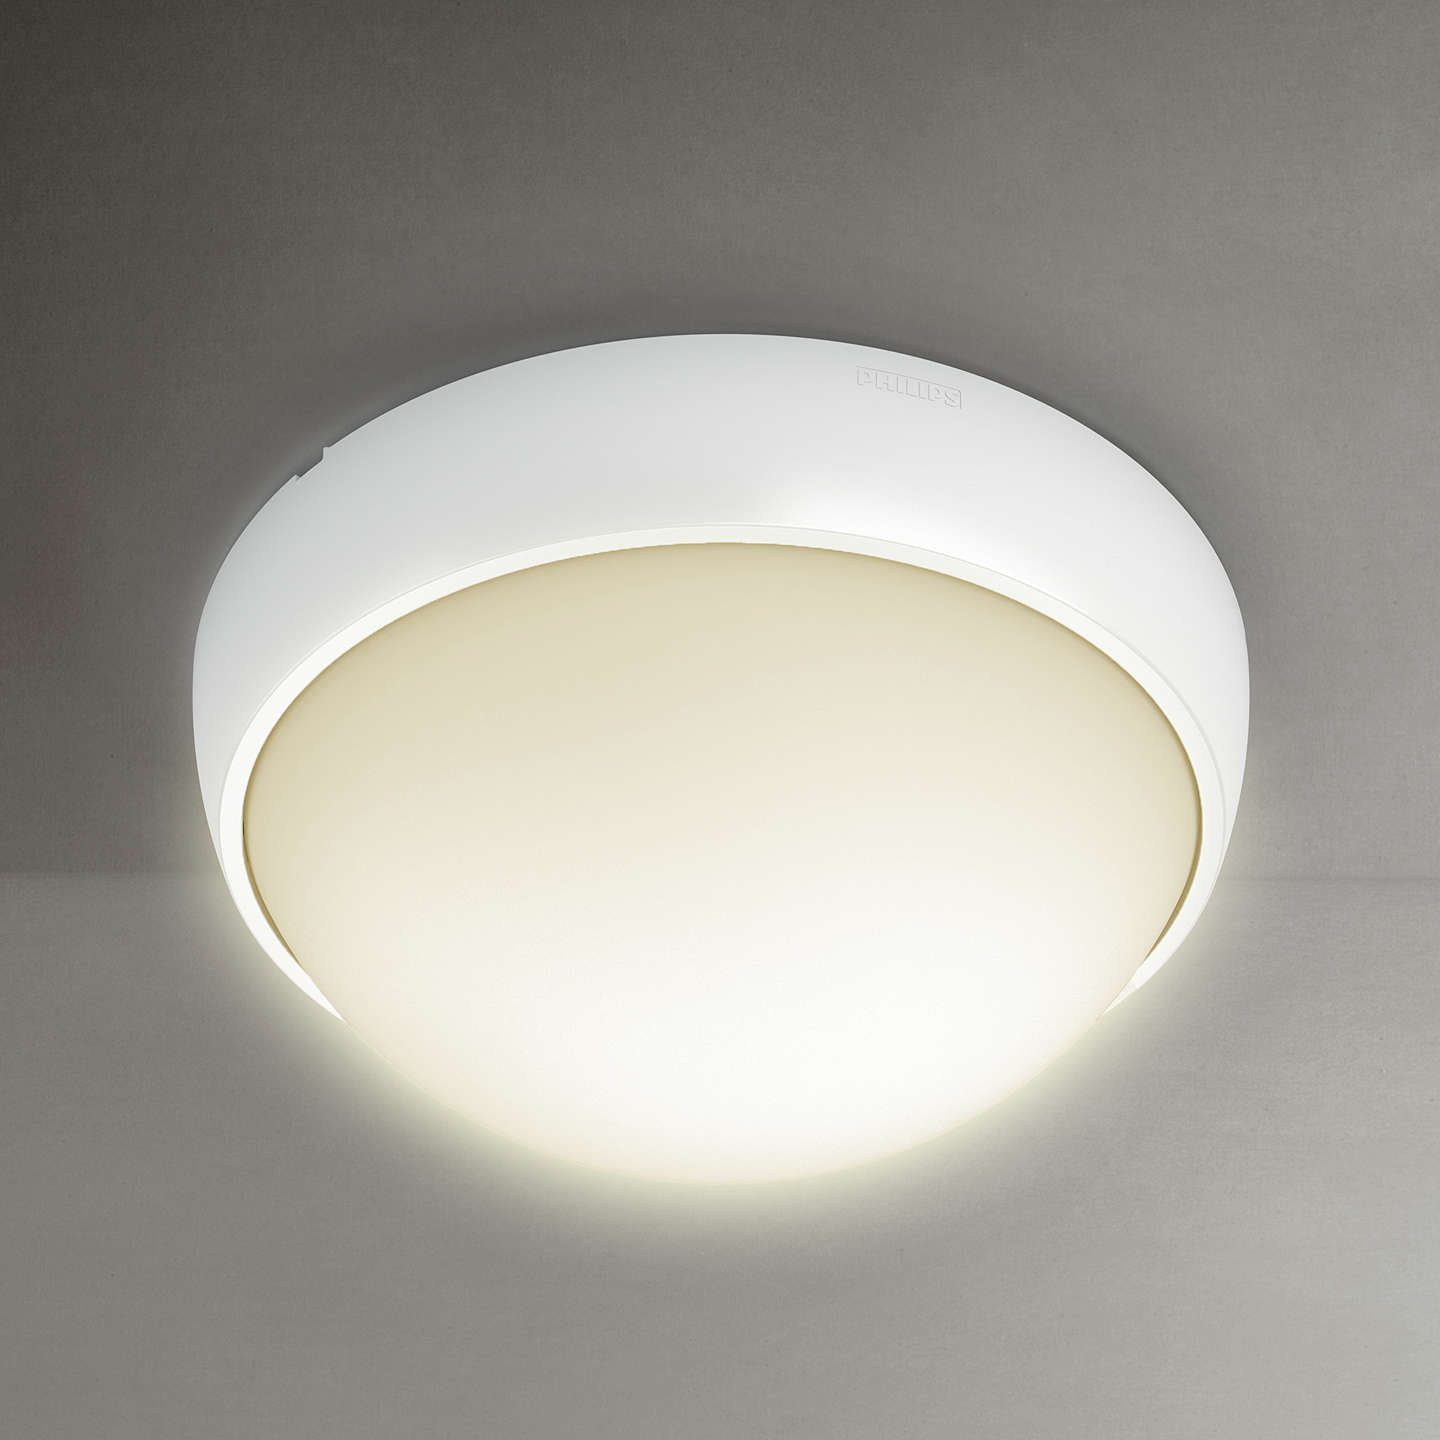 Philips Waterlily LED Bathroom Light at John Lewis